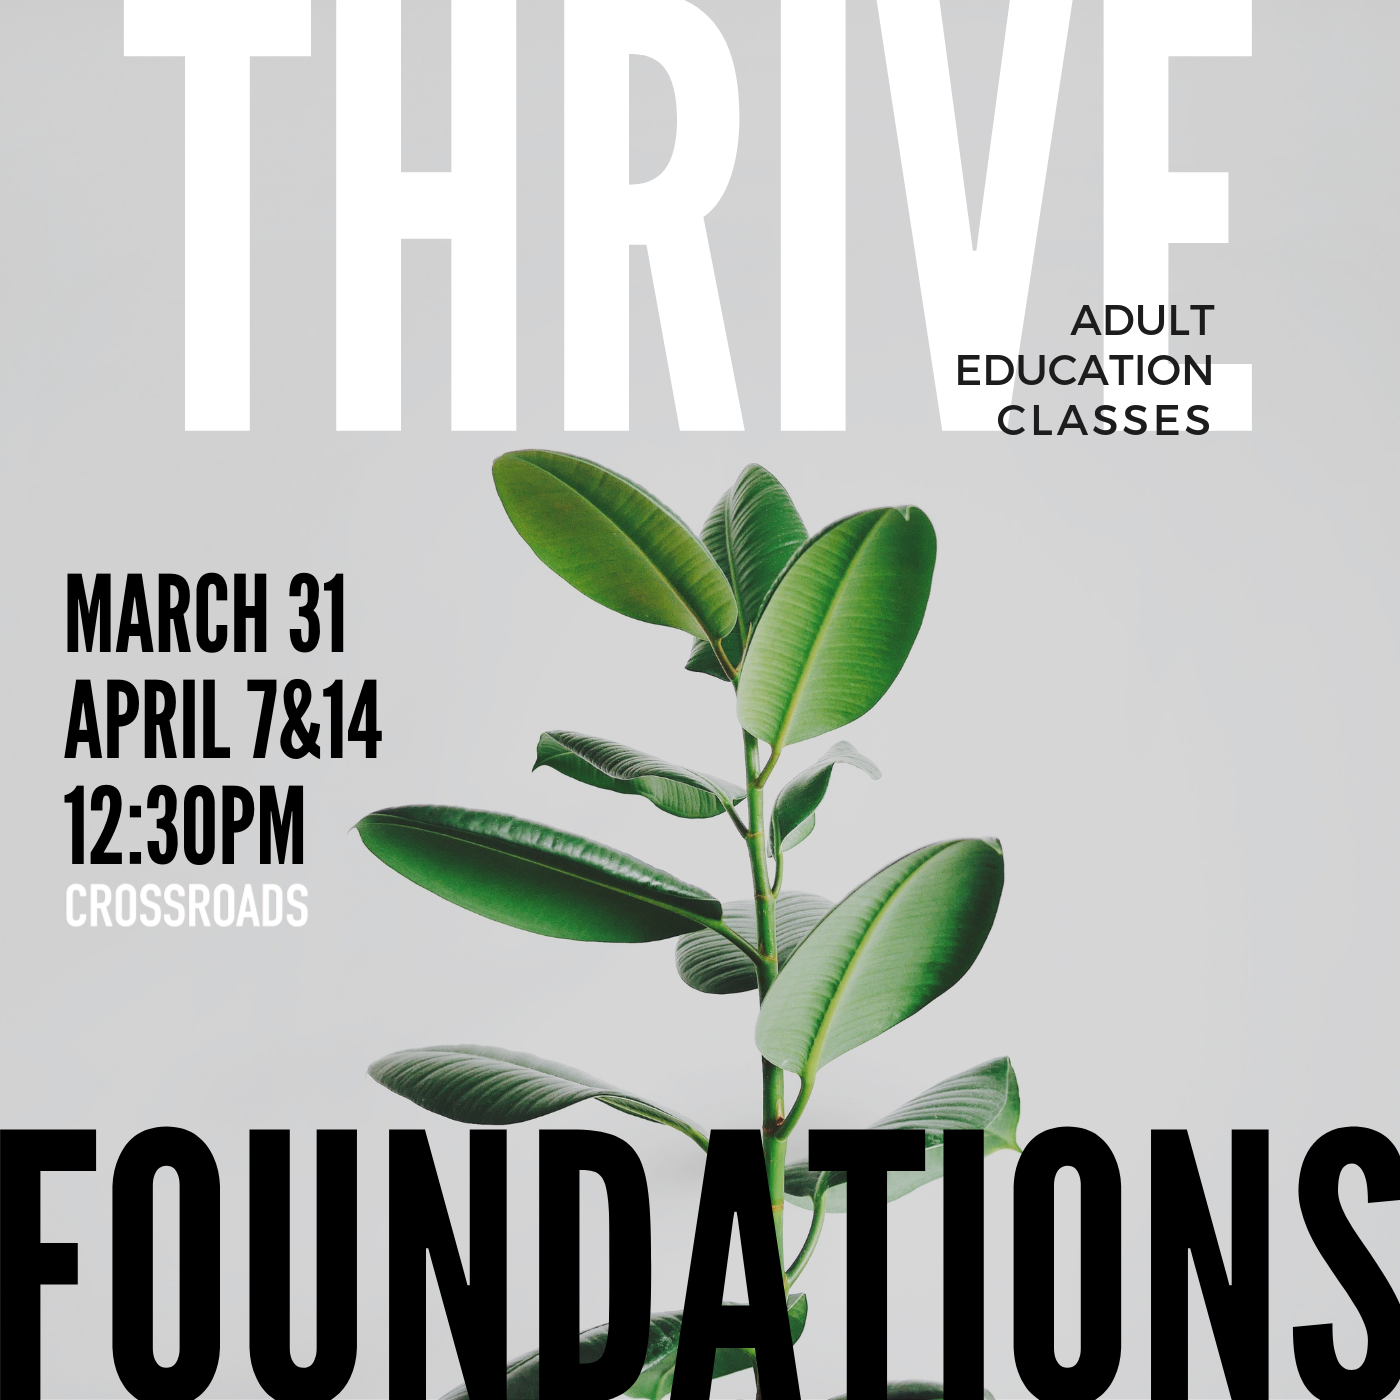 Thrive logo 5.34.09 PM.png